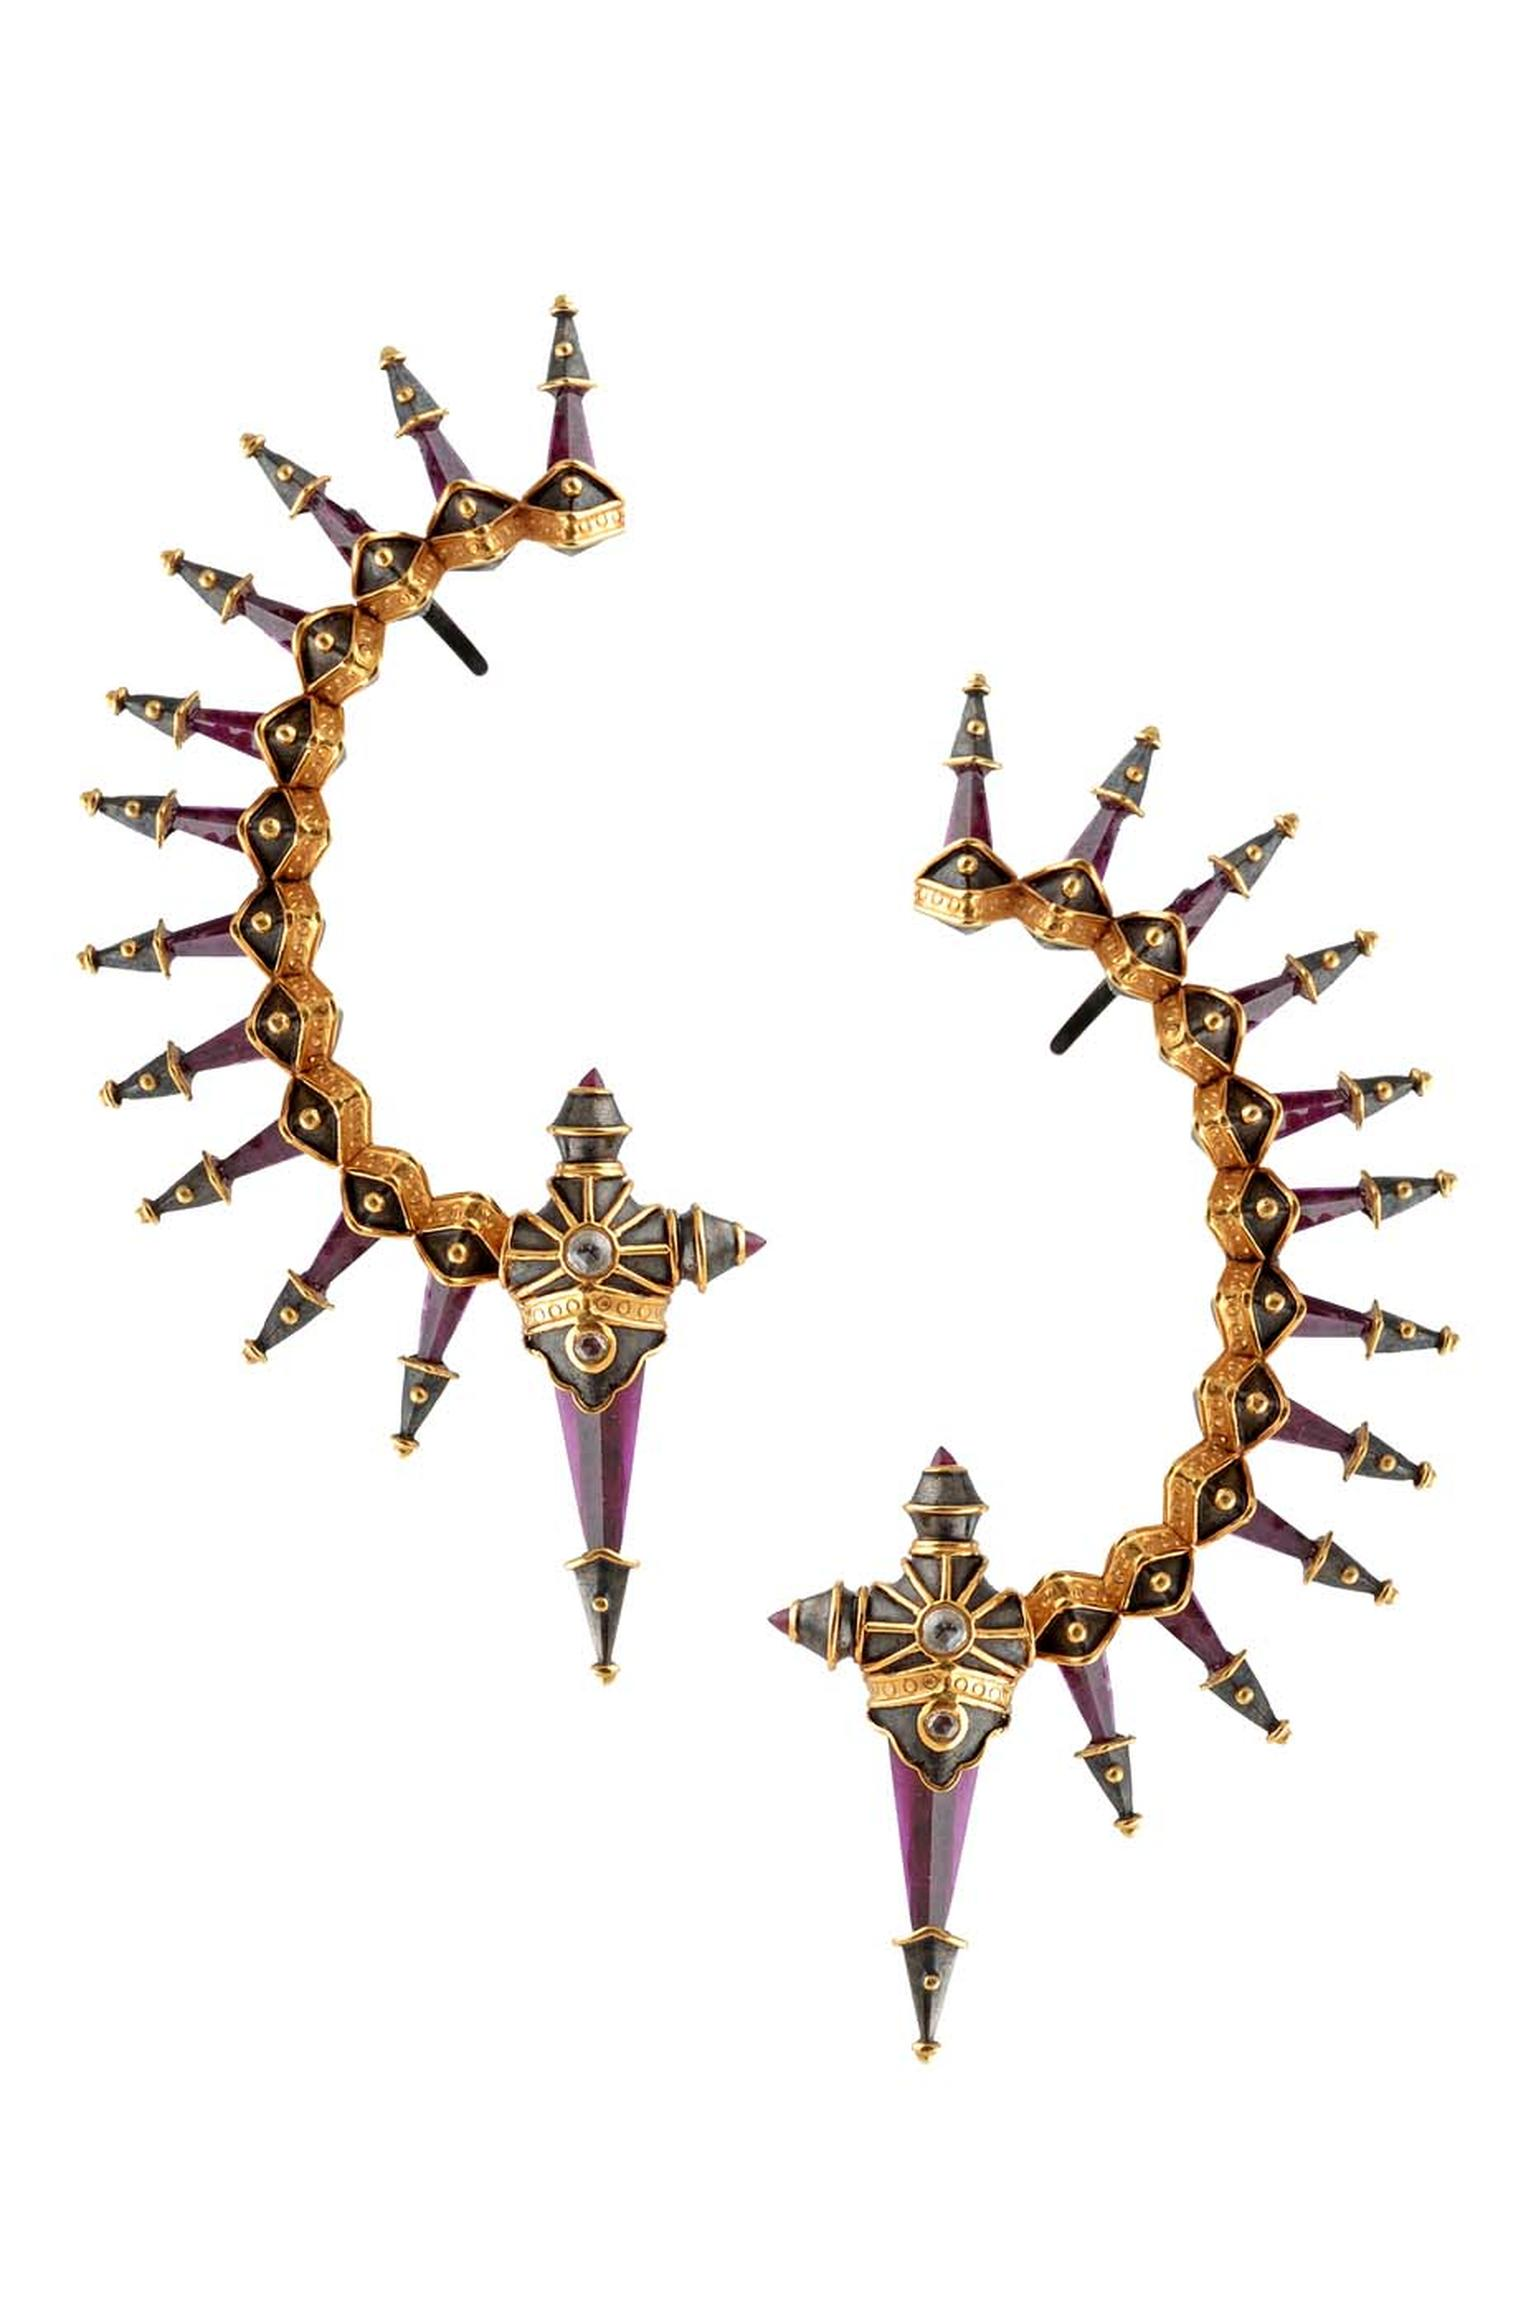 Amrapali Dark Maharaja Warrior's Sword ear cuffs in silver and gold with diamonds.